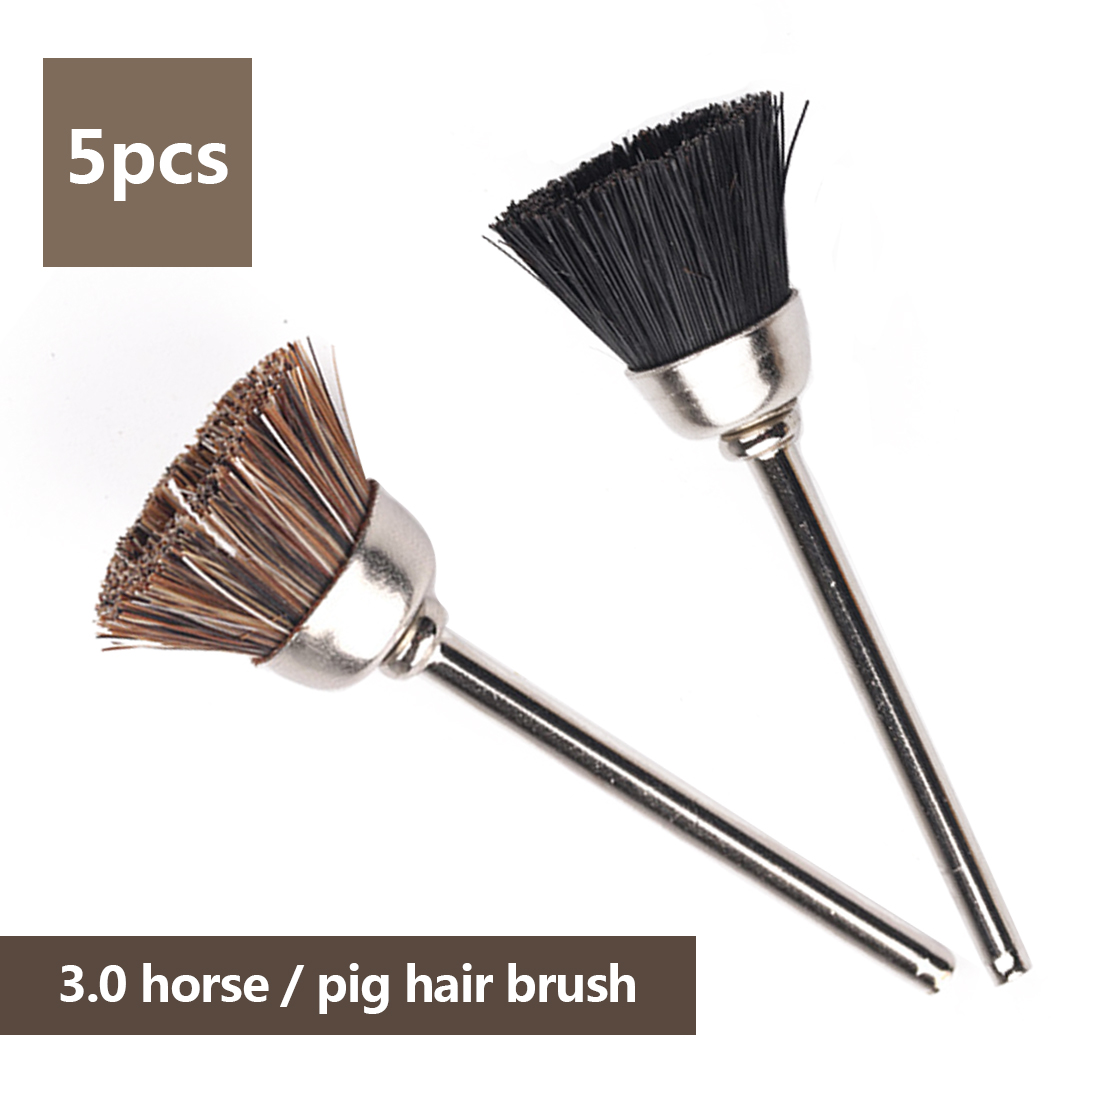 Dremel Accessories 5pc 3mm Diameter Soft Pig /Horse Hair Polishing Cup Brush Wheel Metal Buffing Polishing For Drill Rotary Tool